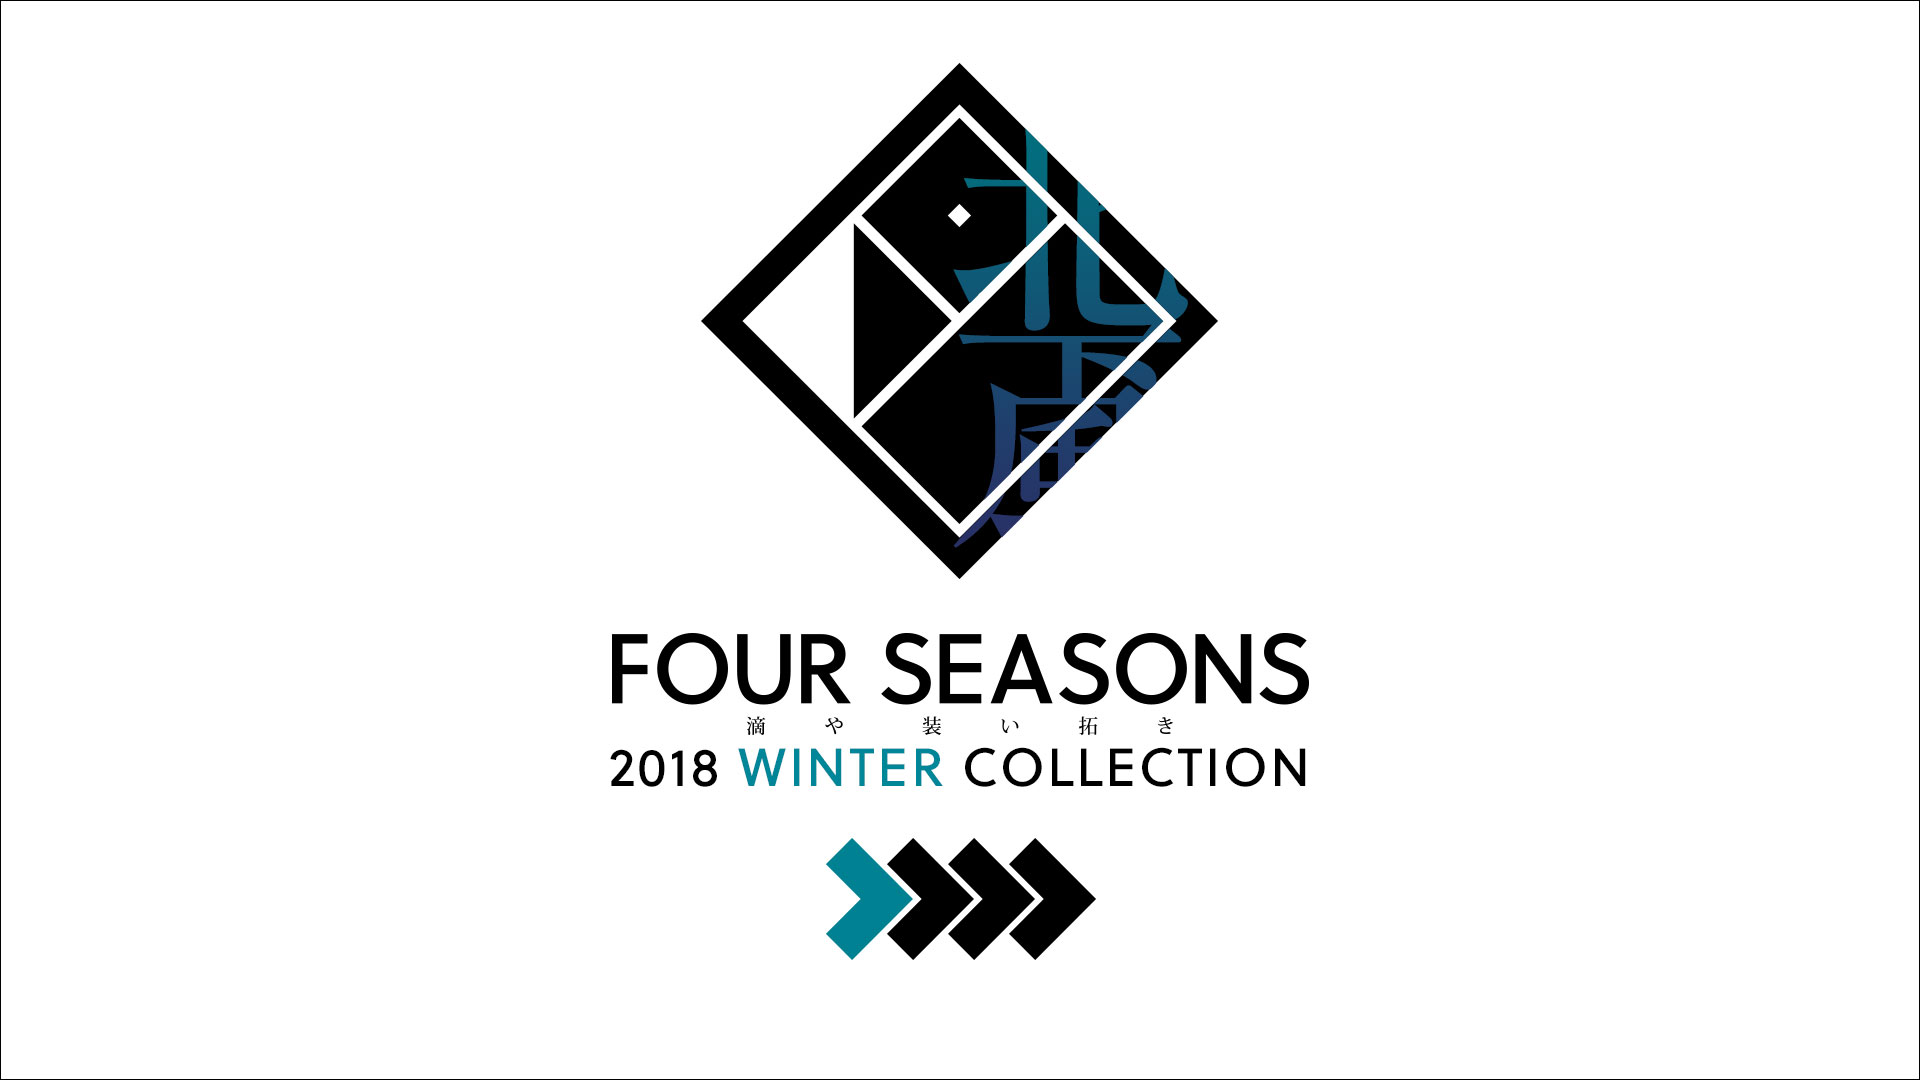 [PHOTO:FOUR SEASONS 2018 WINTER COLLECTION]